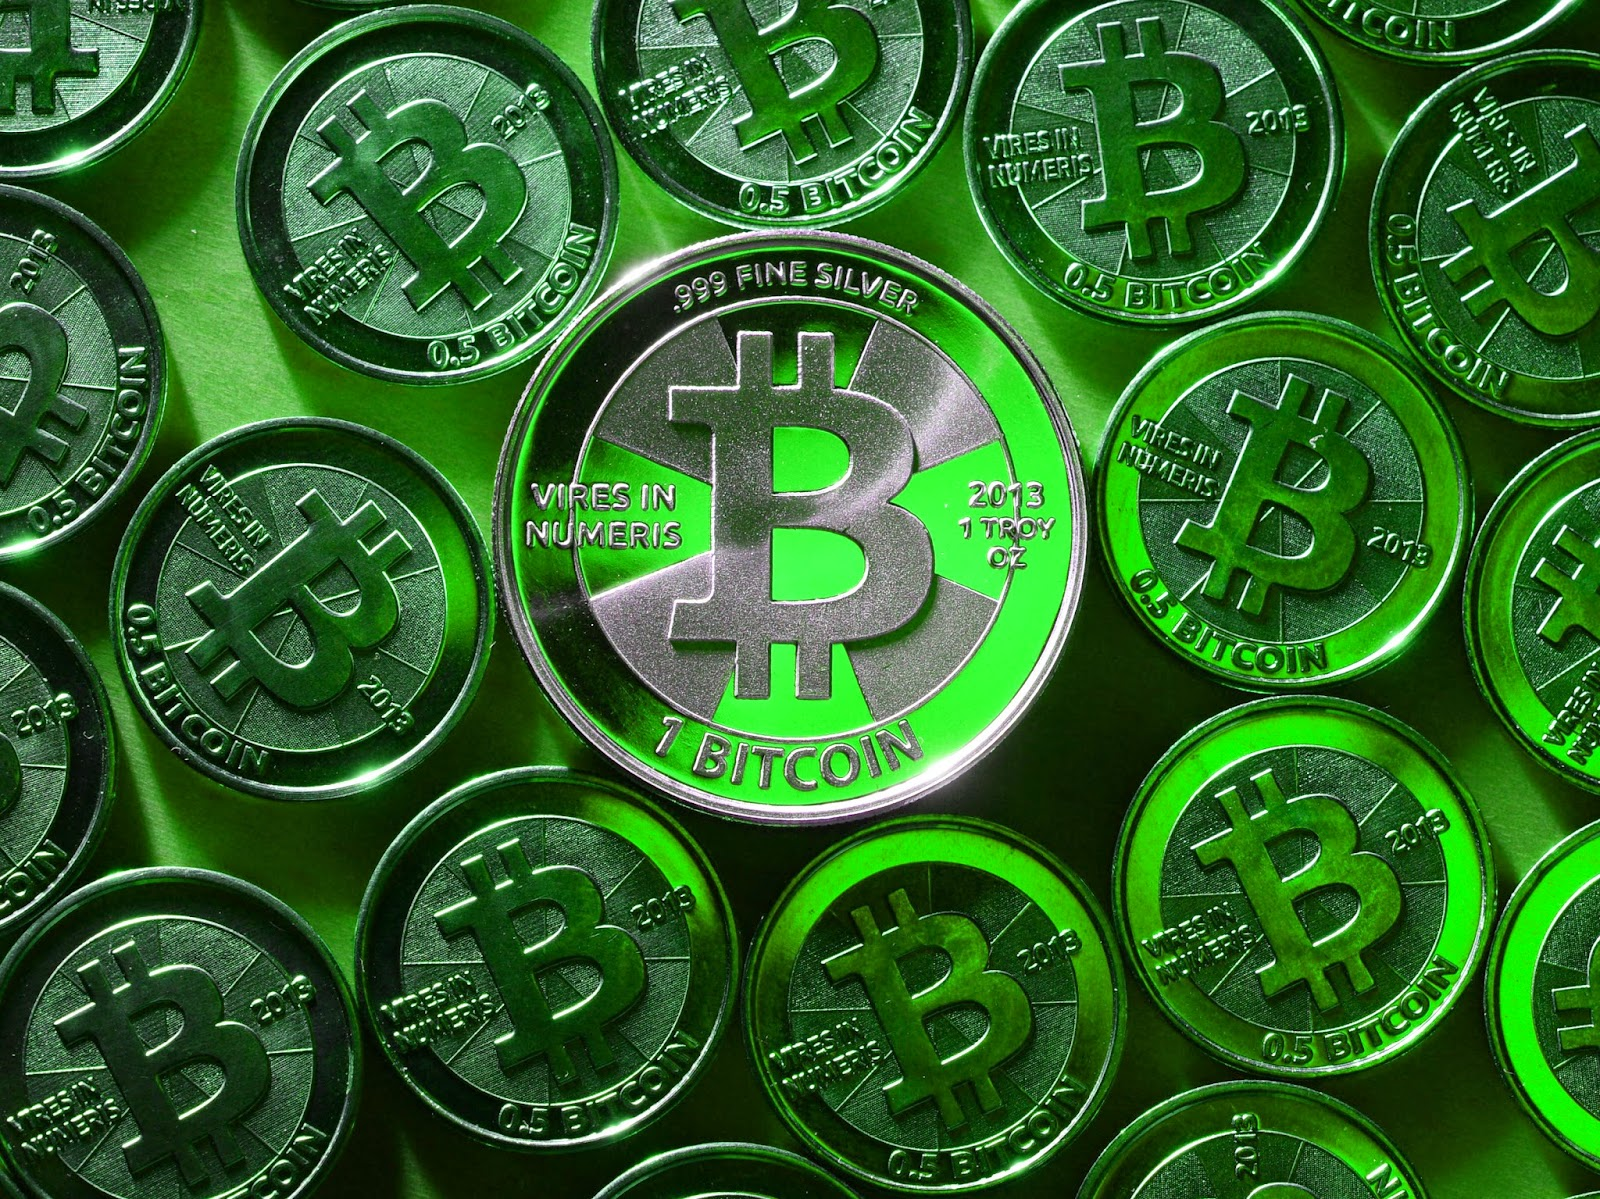 The Globant invests $ 500 million in Bitcoin!